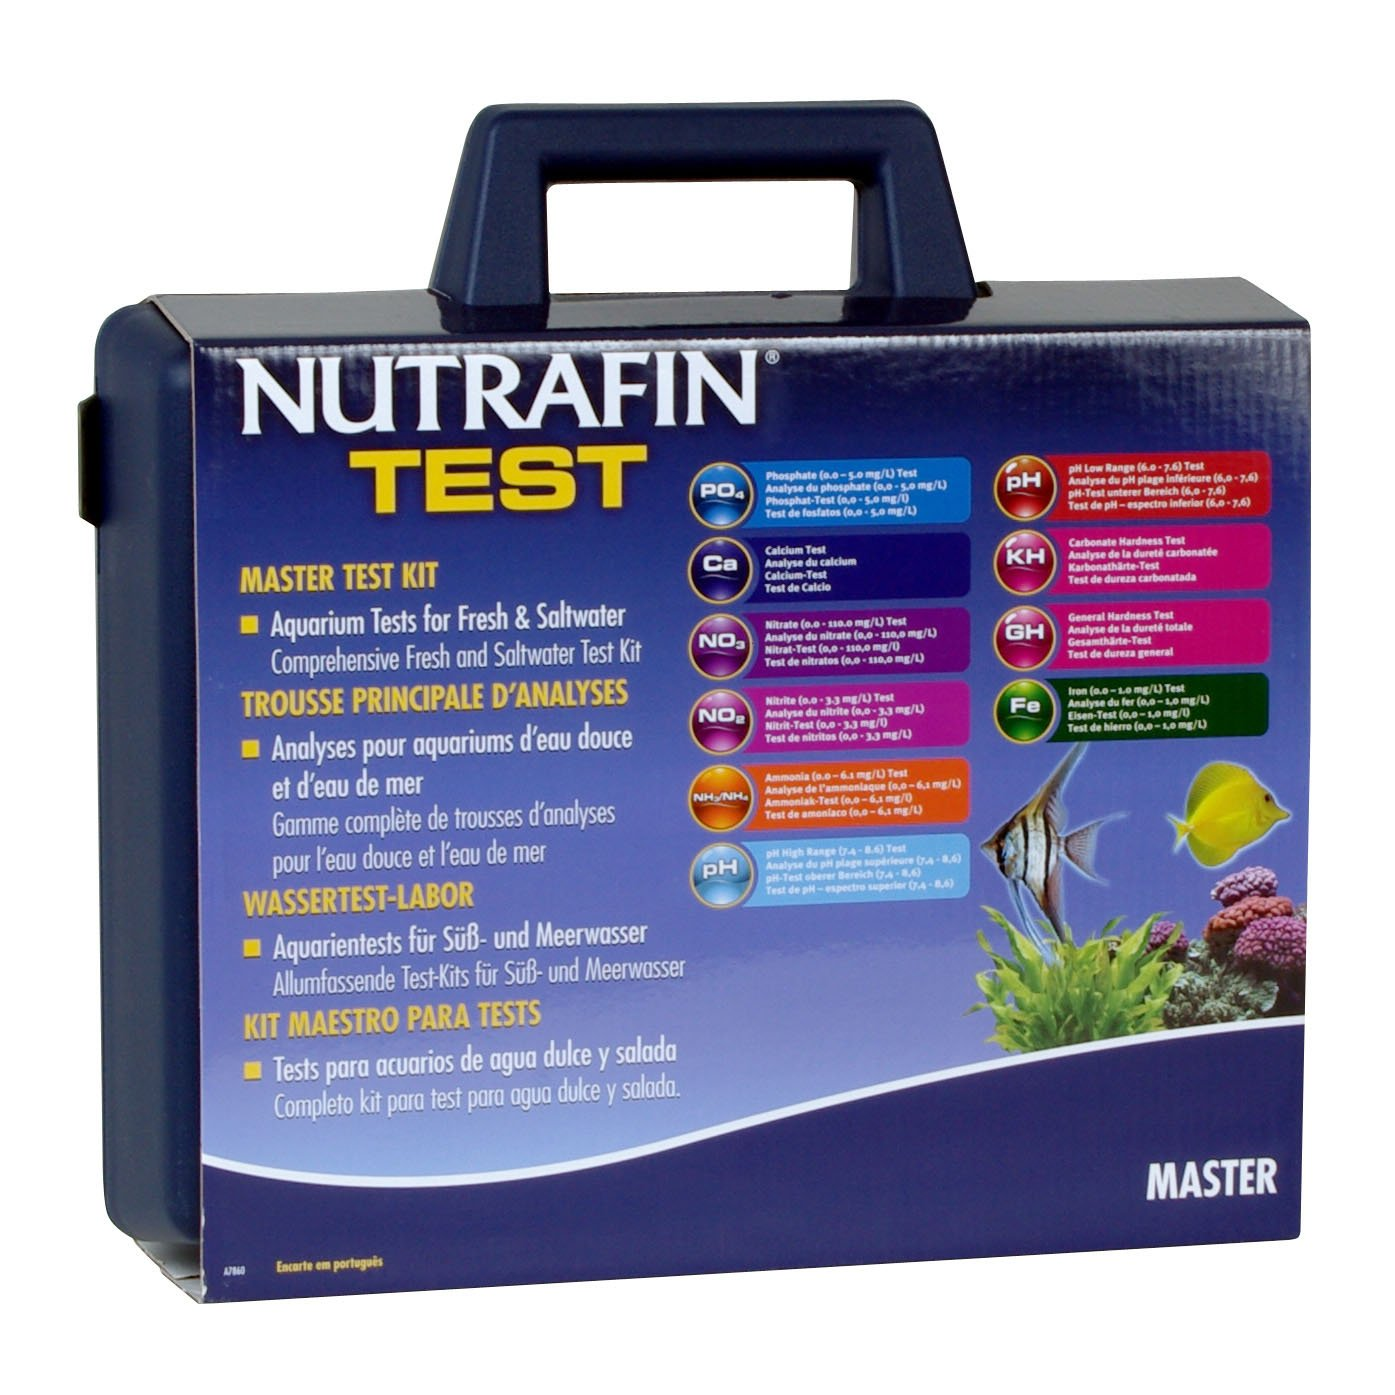 Amazon Nutrafin Master Test Kit Contains 10 Test Parameters